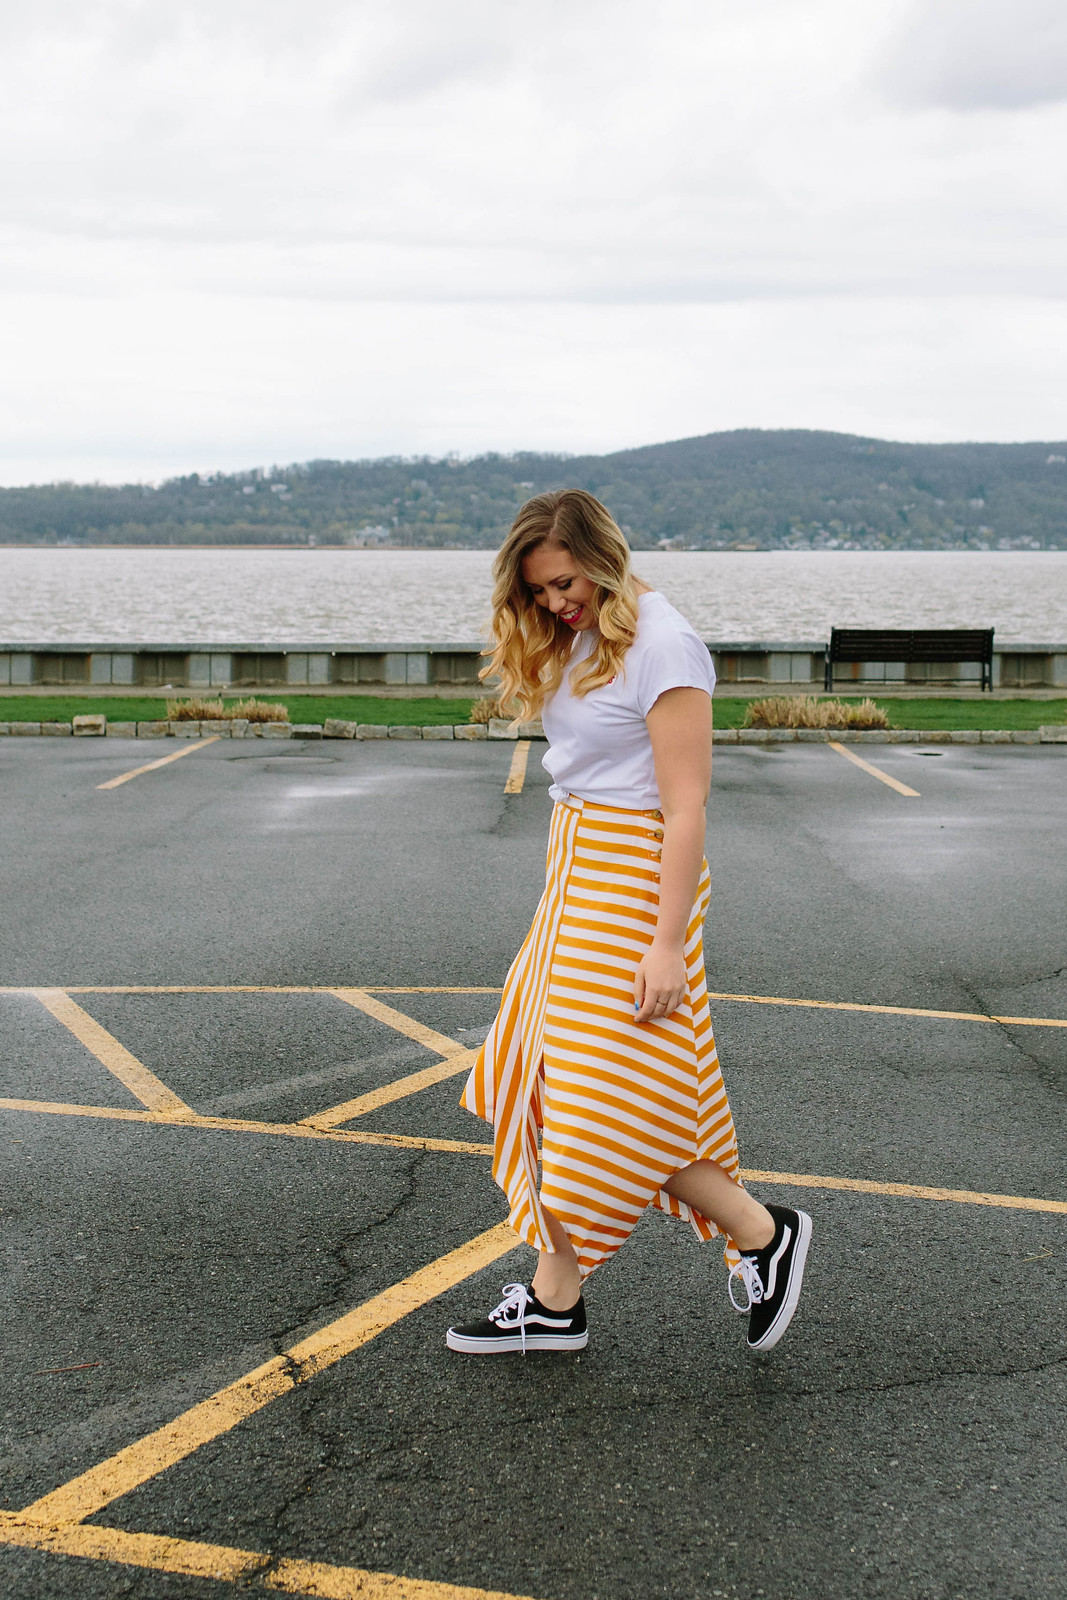 How to Dress Down a Midi Skirt Topshop Button Handkerchief Hem Midi Striped Skirt Watermelon Purse Bag Vans Old Skool Sneakers Jackie Giardina Living After Midnite Blog